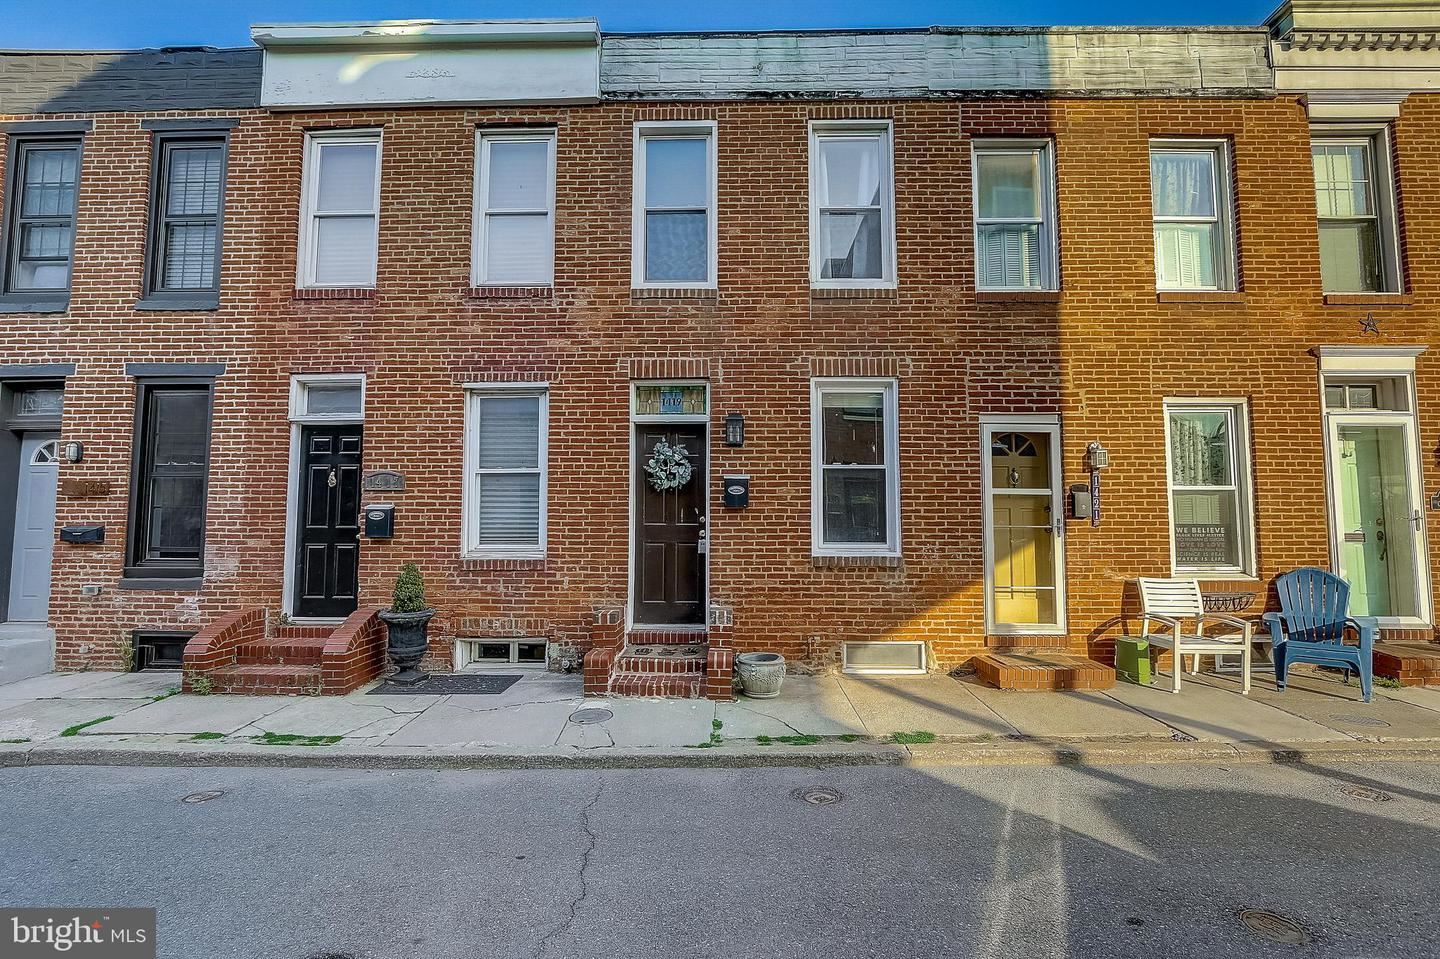 1419 COOKSIE ST, Baltimore, MD 21230 - MLS#: MDBA545526